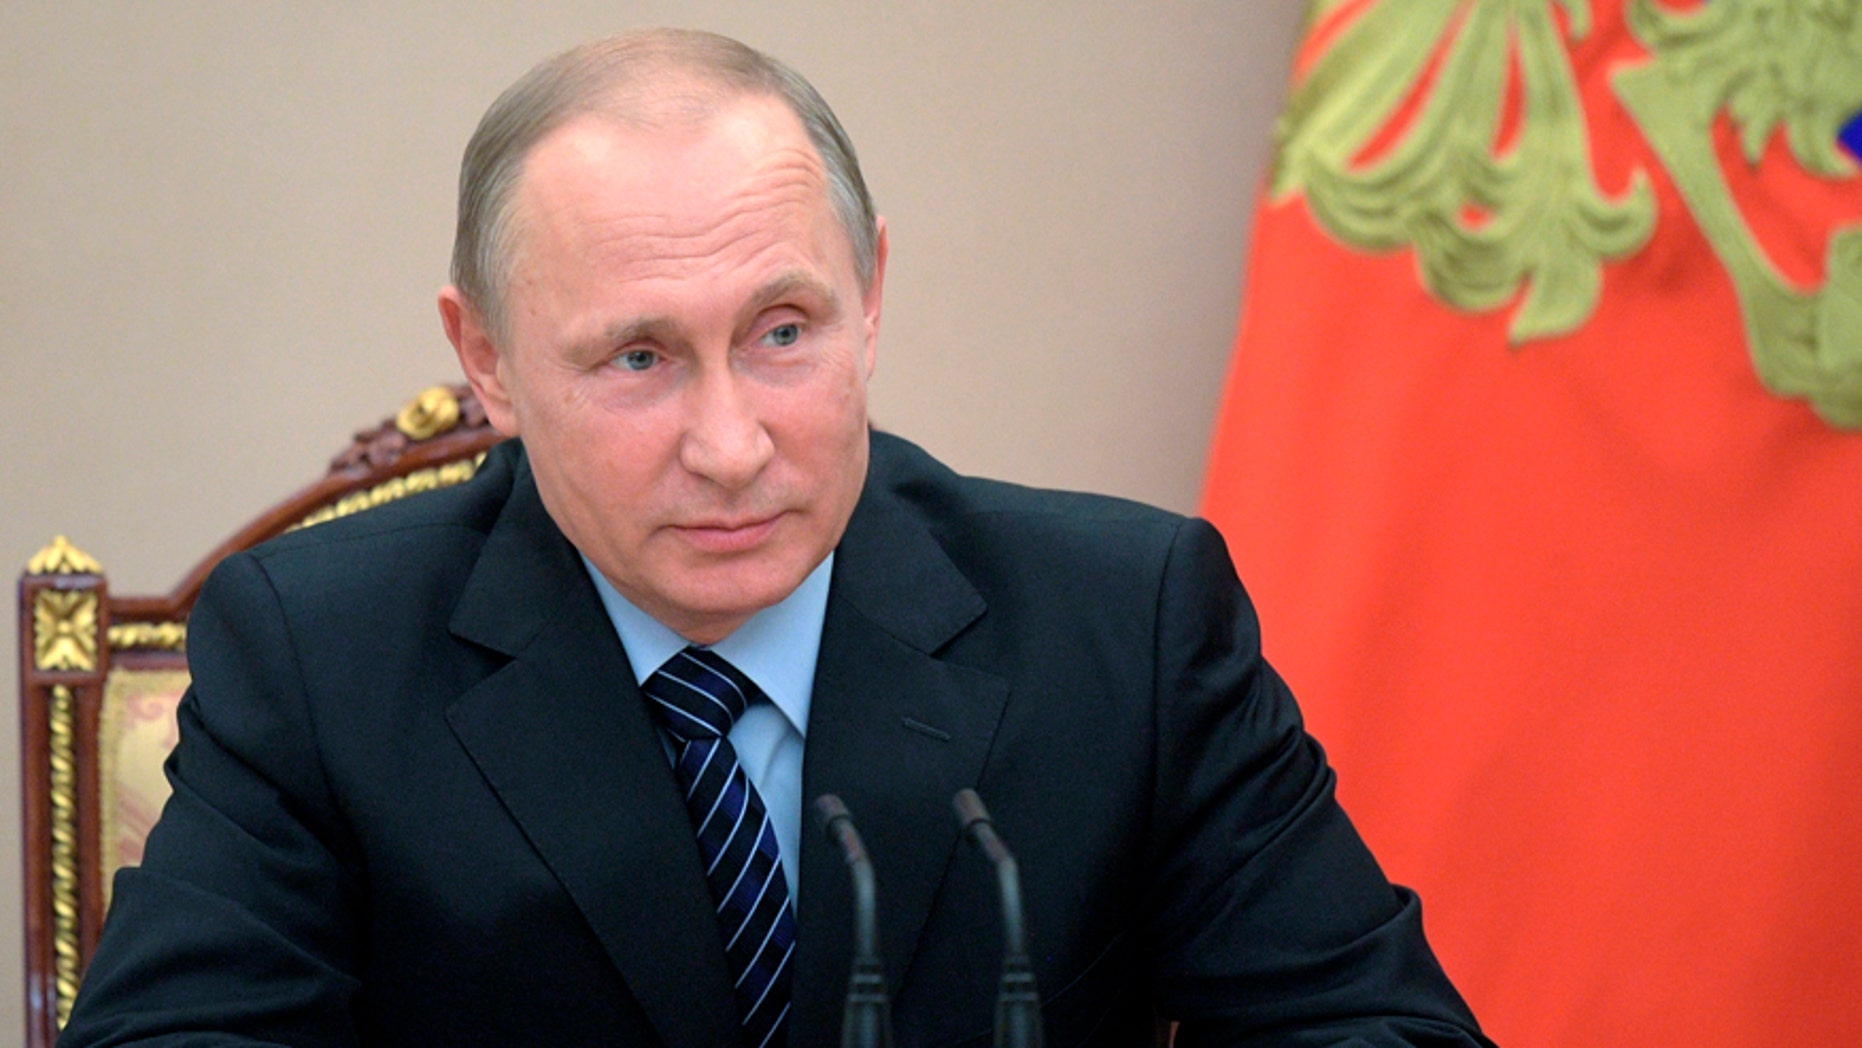 Russian President Vladimir Putin chairs a Security Council meeting in Moscow, Russia, Friday, June 16, 2017. The meeting was focused on the Russian military's claim that it had killed the Islamic State group's leader in an airstrike in Syria. (Alexei Druzhinin/Pool Photo via AP)